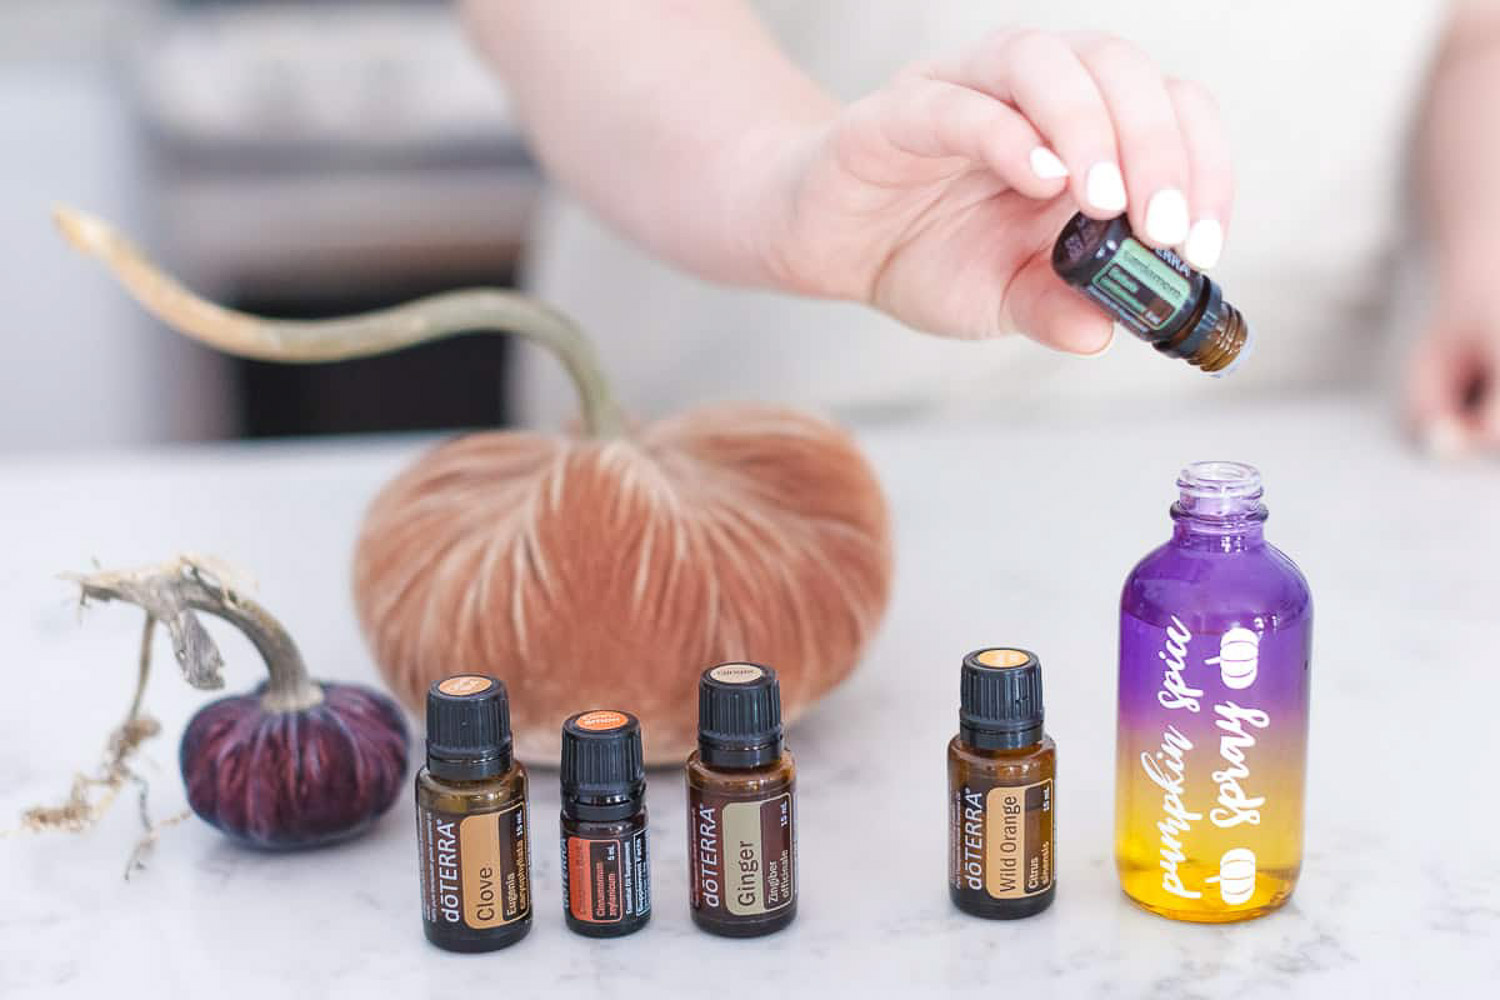 A hand pouring cardamon essential oil into a labeled bottle with 2 pumpkins and 4 bottles of essential oil on the side.